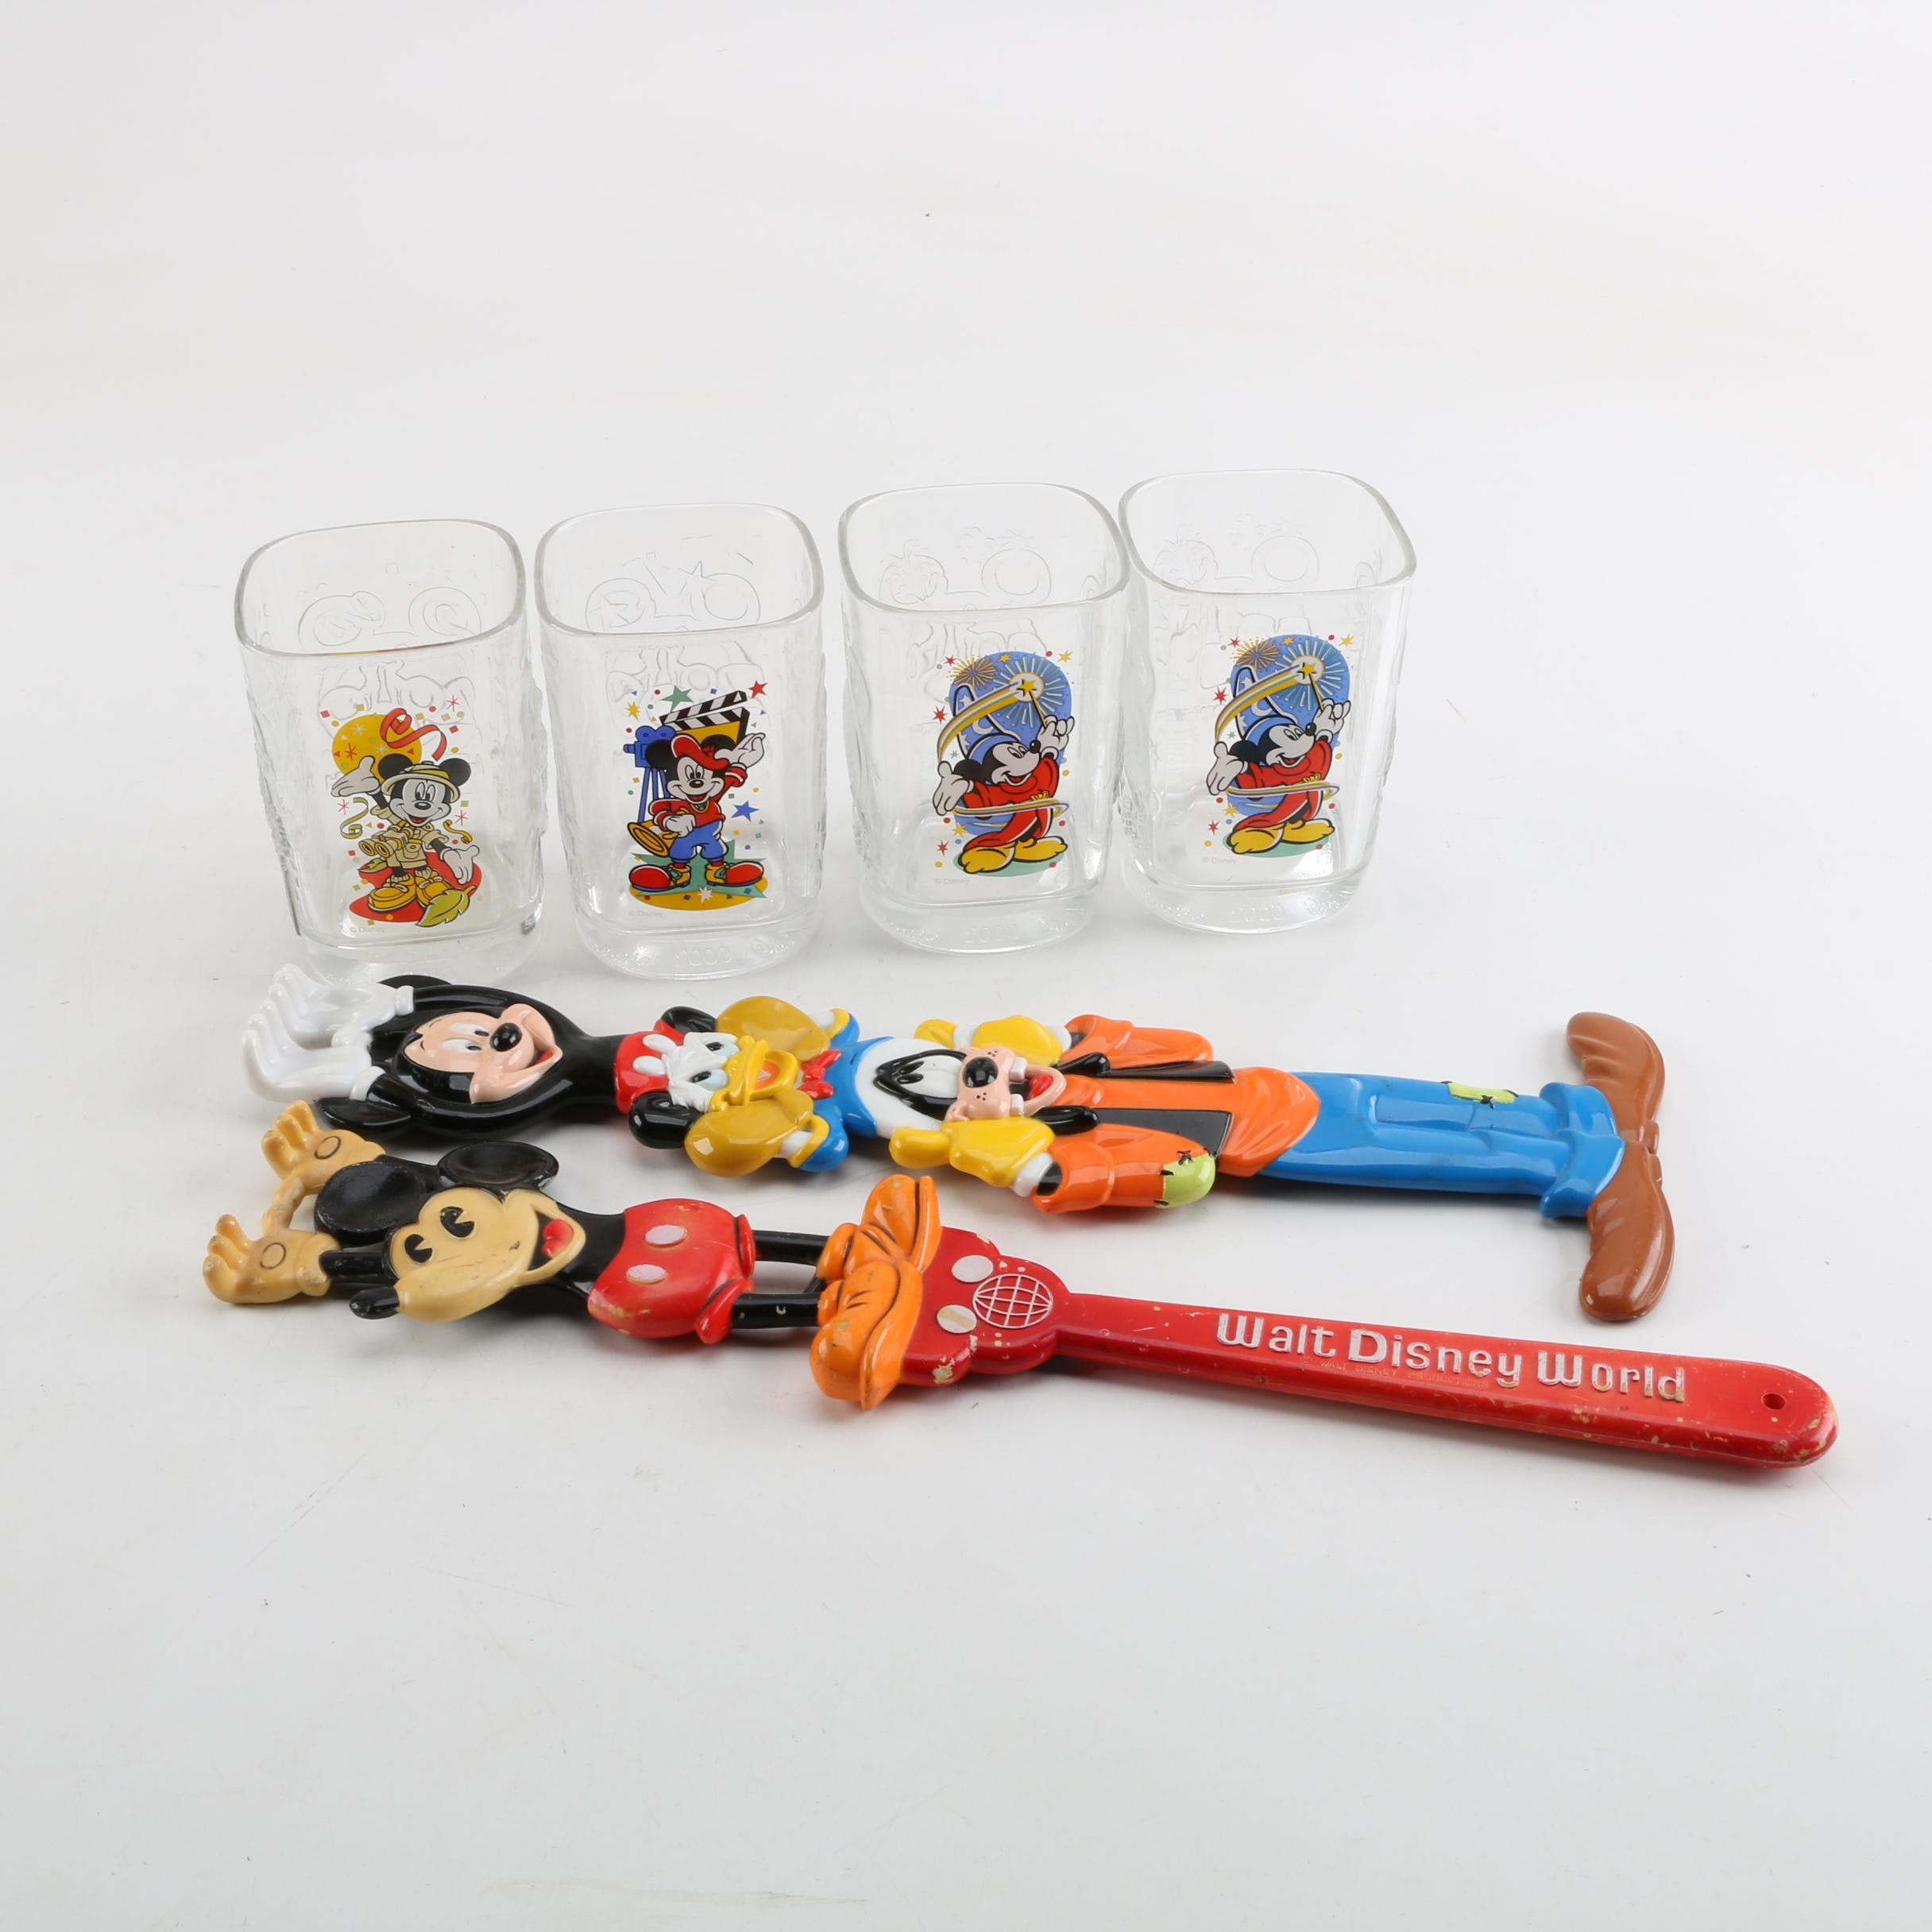 Walt Disney World Backscratchers and McDonalds Drinking Glasses